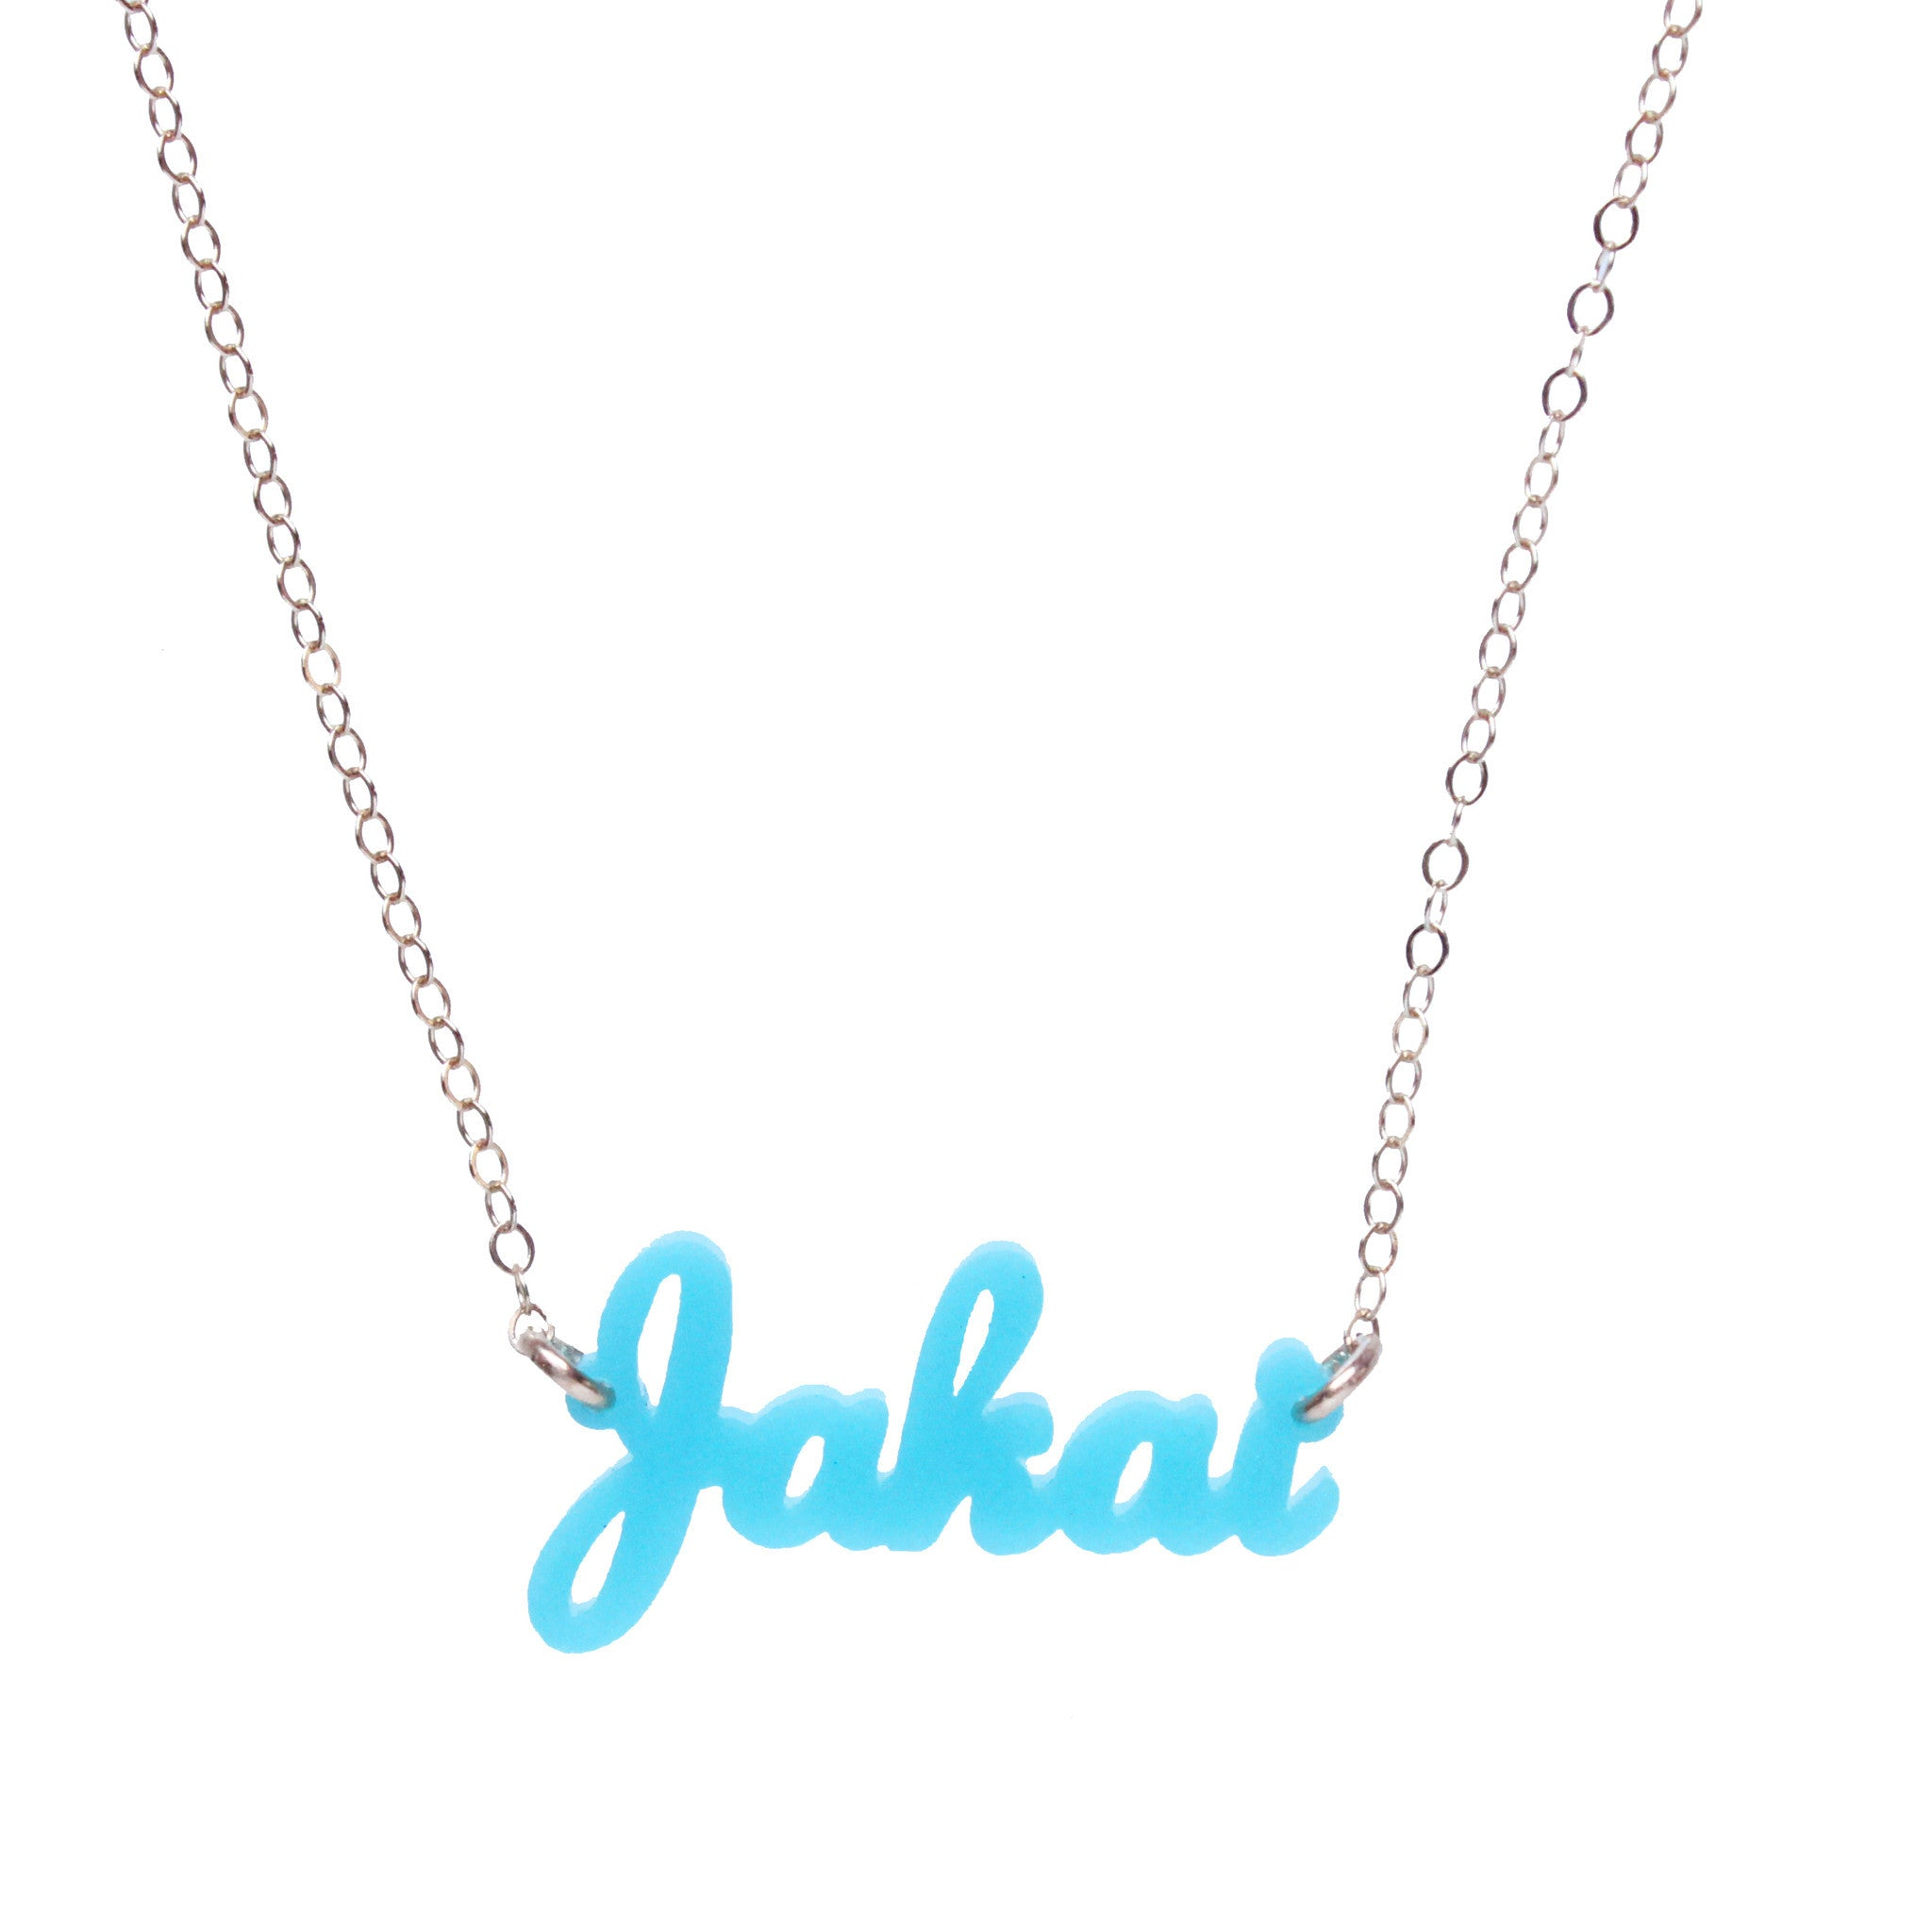 Moon and Lola - Acrylic Nameplate Necklaces I-J